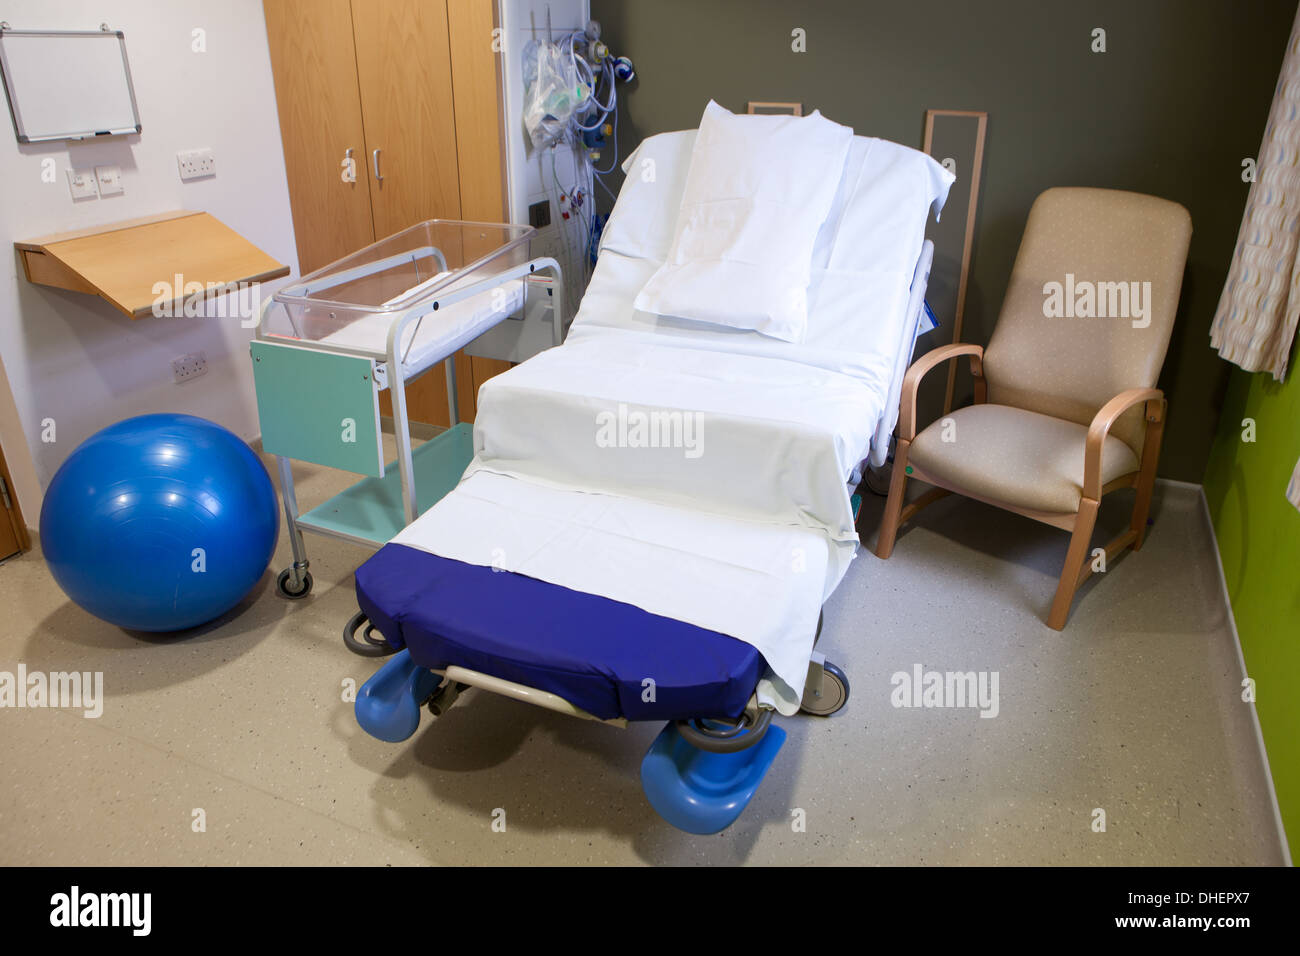 Cardiac chair hospital bed - Hospital Bed On A Maternity Ward Uk Stock Image